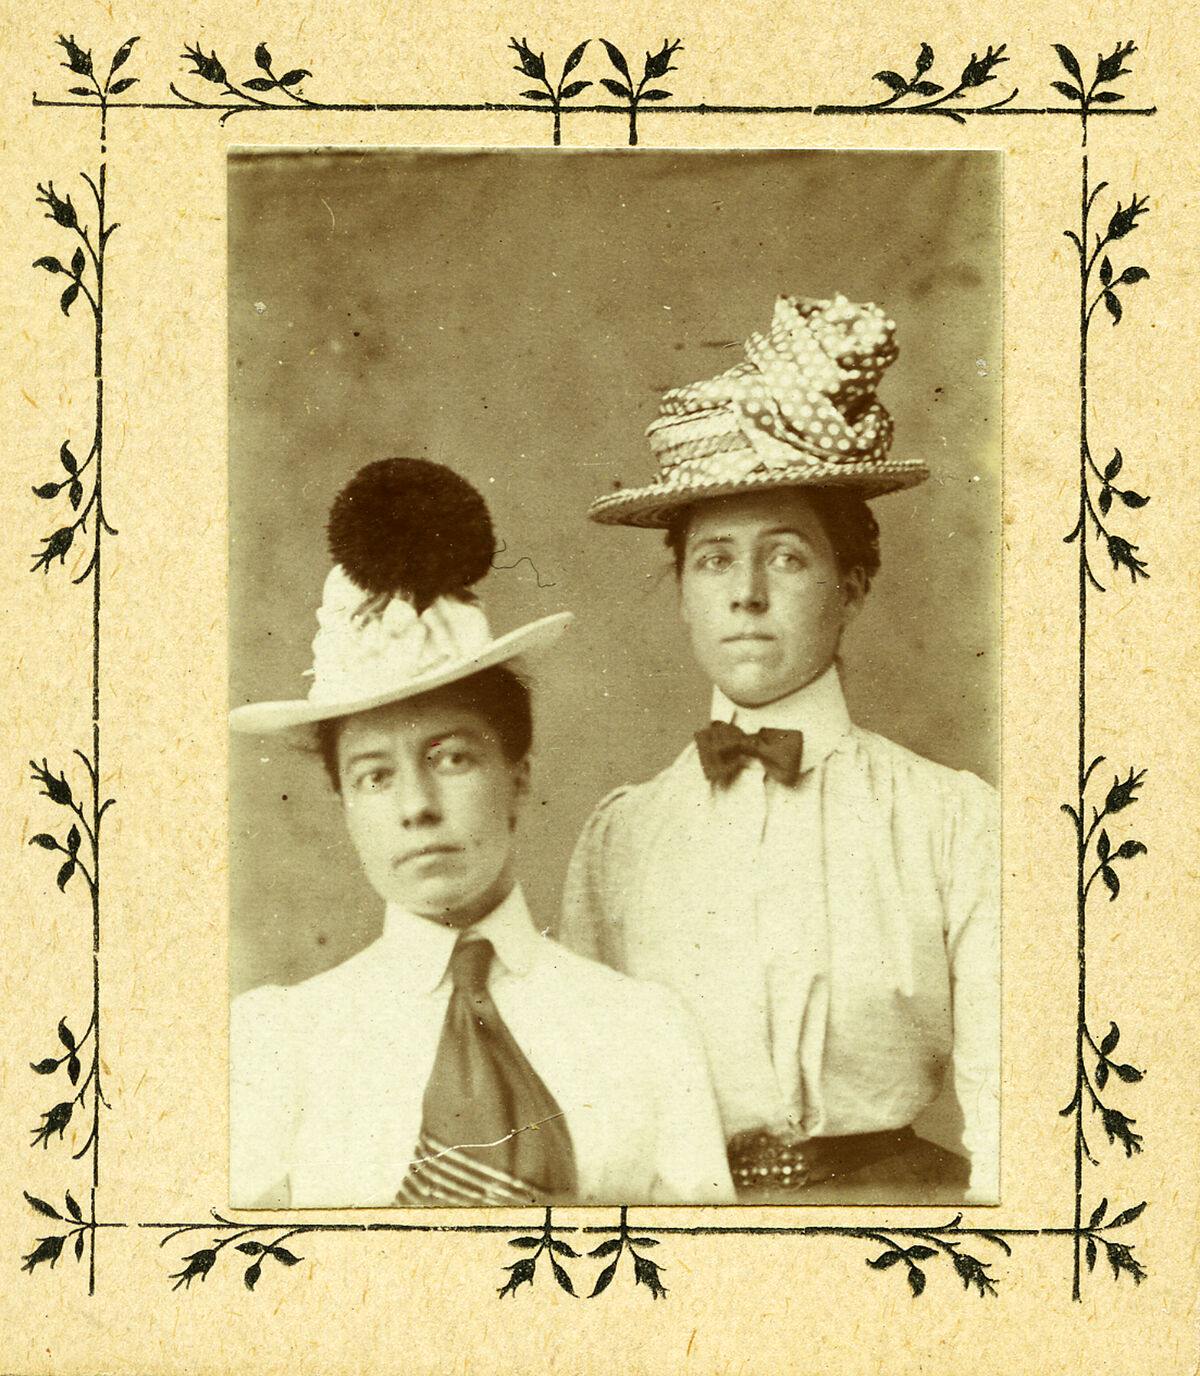 Alice Austen and Gertrude Tate, Pickards Penny Photo Studio, Stapleton Staten Island, c. 1905. Courtesy of Alice Austen House.